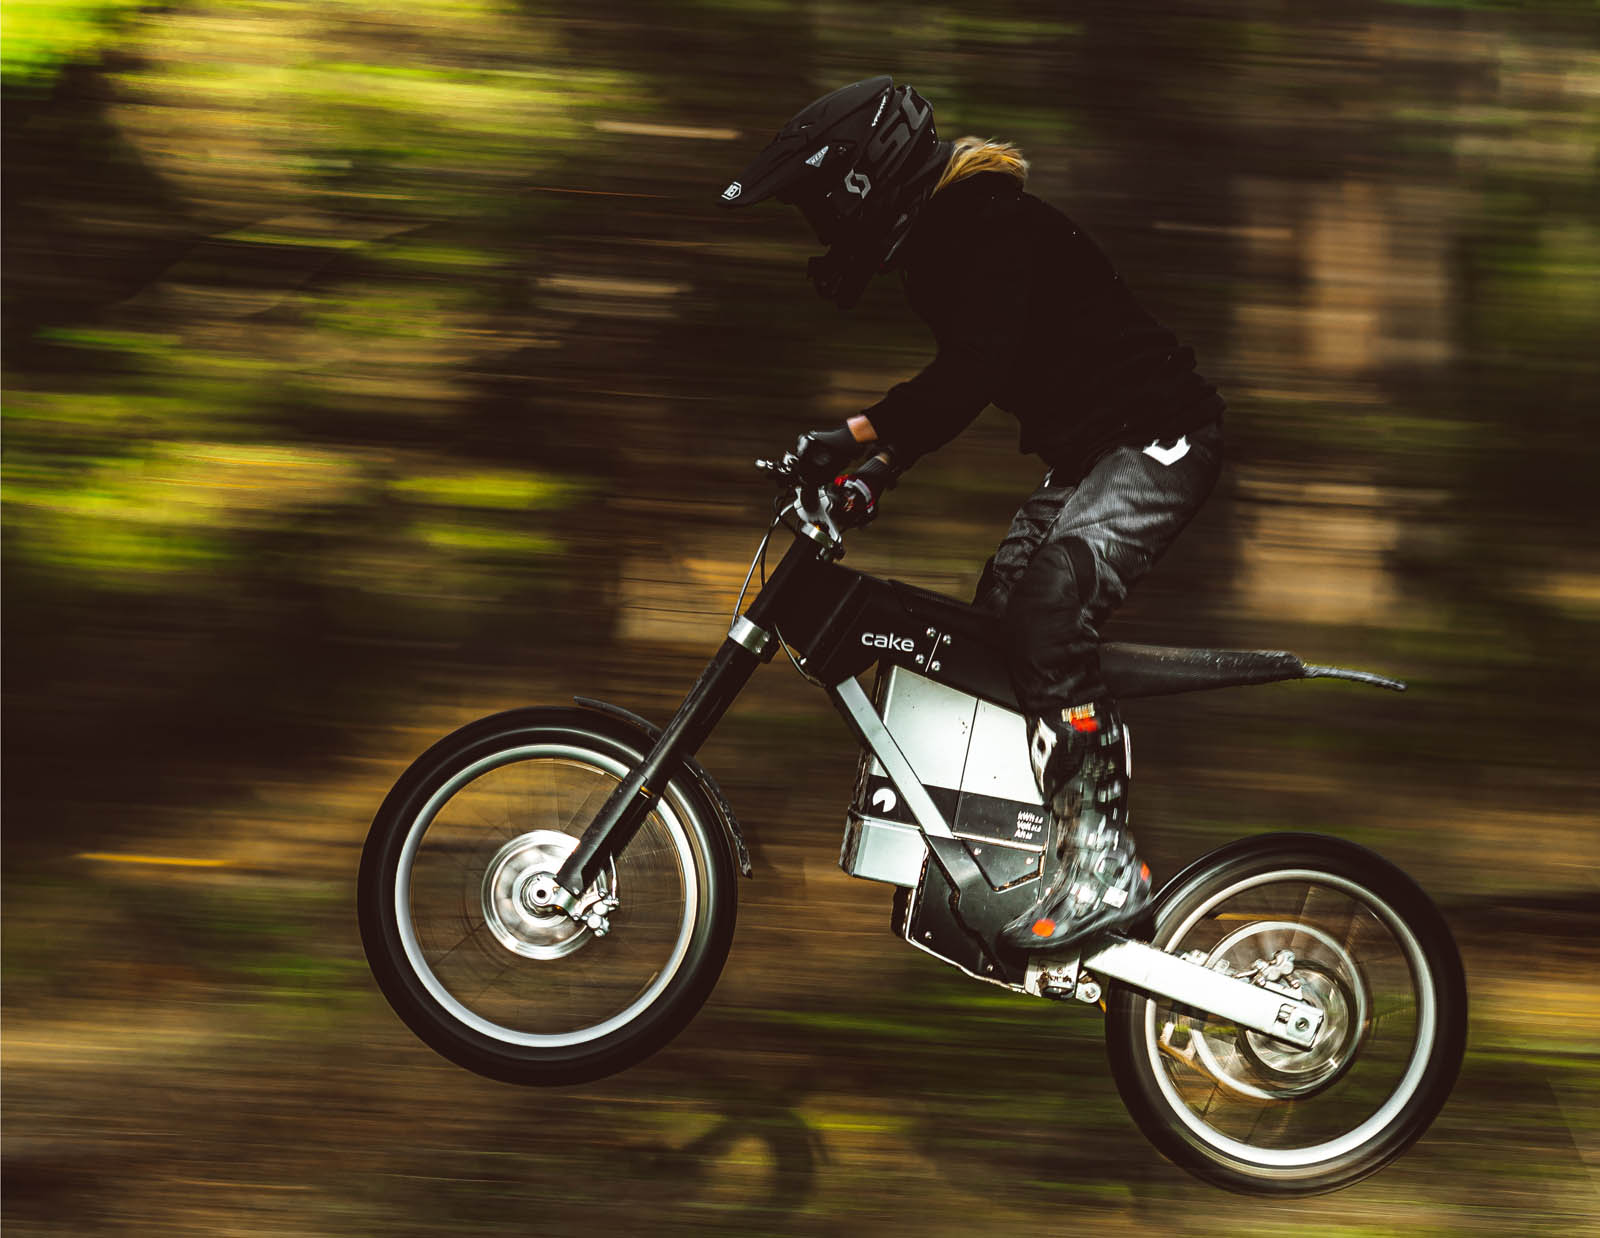 First look: Off-road electric motorcycle or e-bike? CAKE blur the lines